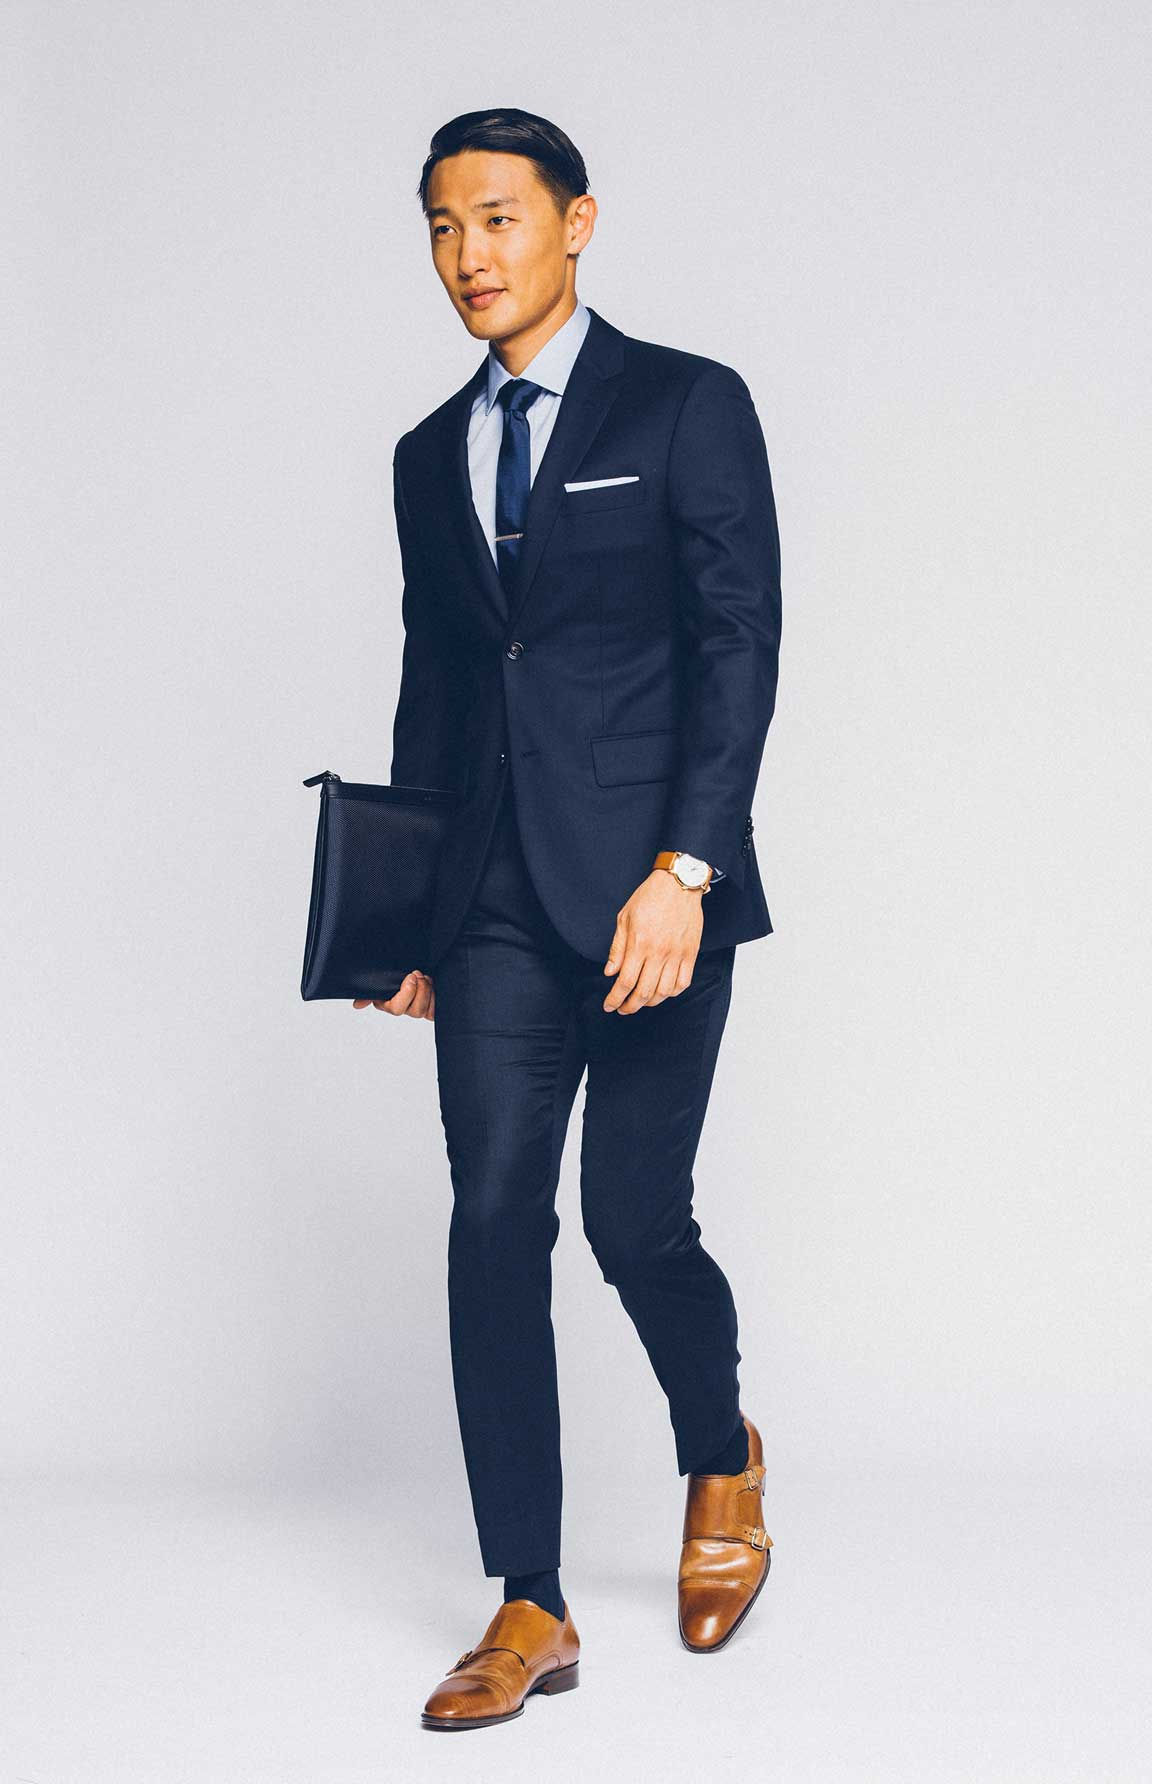 Look like a classic man in our Premium Navy Suit.